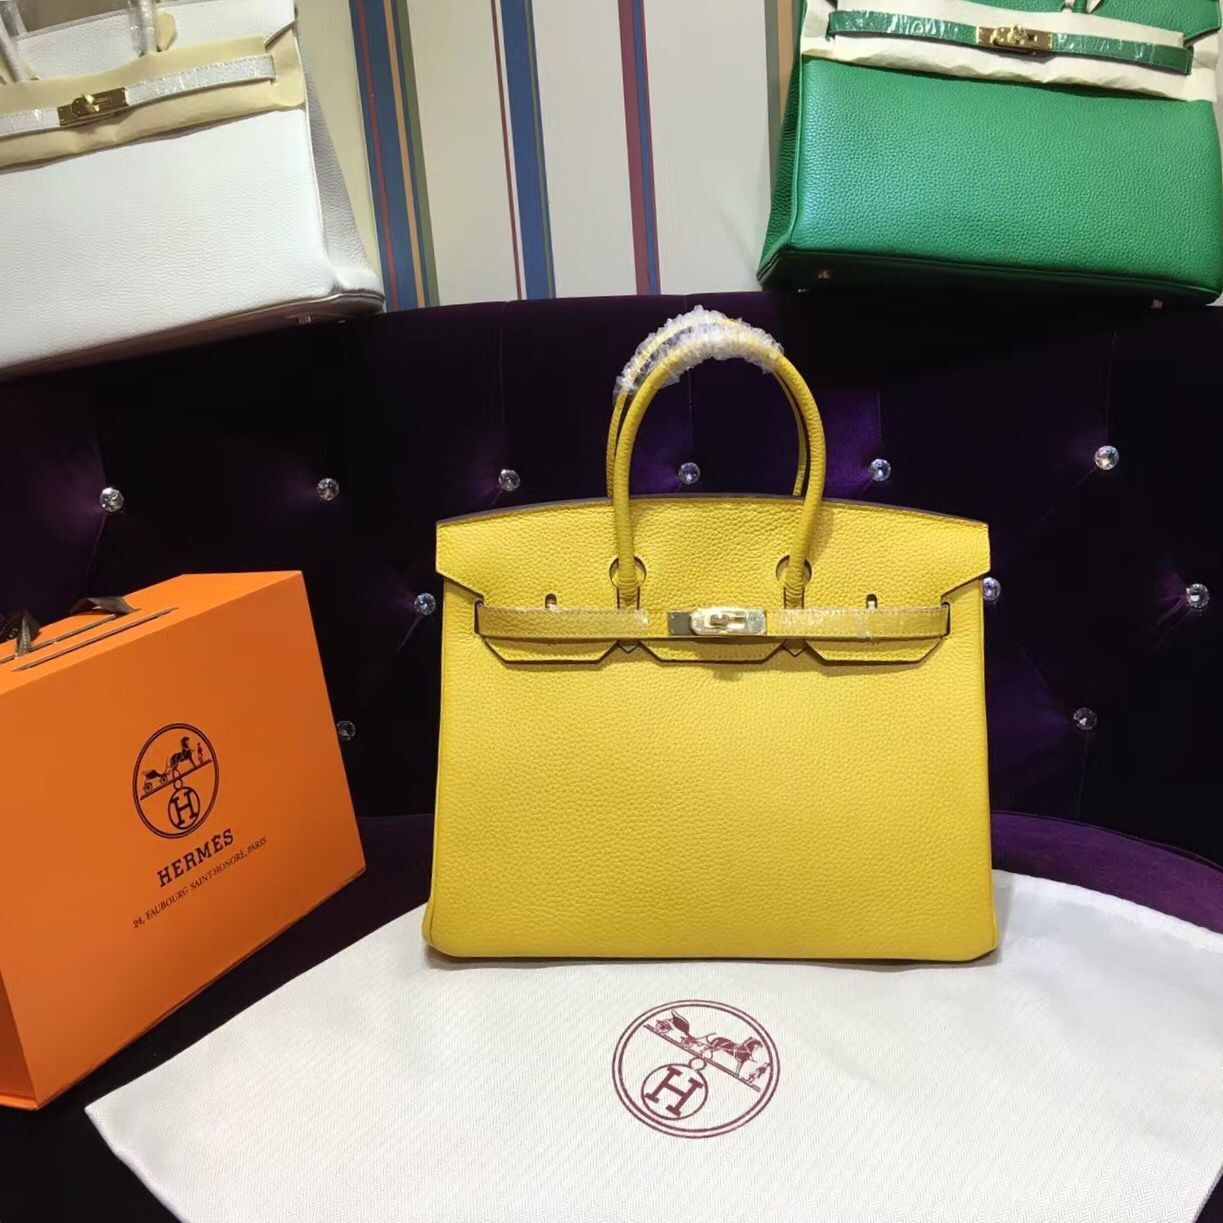 Hermes Birkin 35cm Togo Leather Handbag Yellow Gold